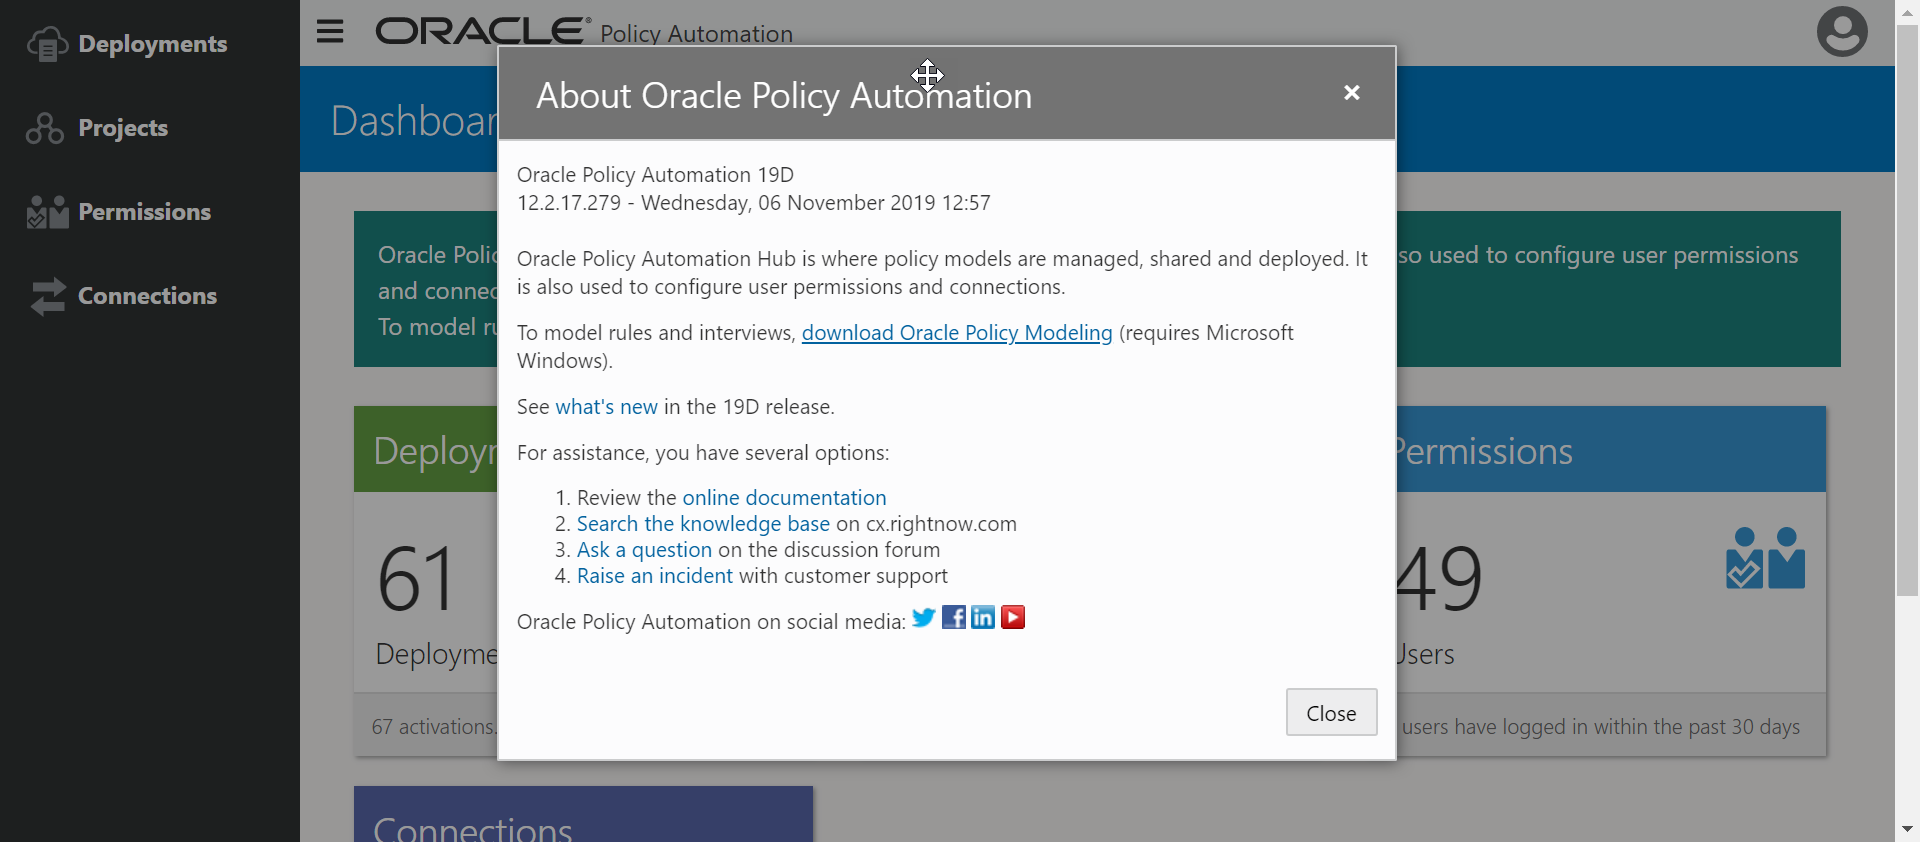 Whats New in Oracle Policy Automation 19D?